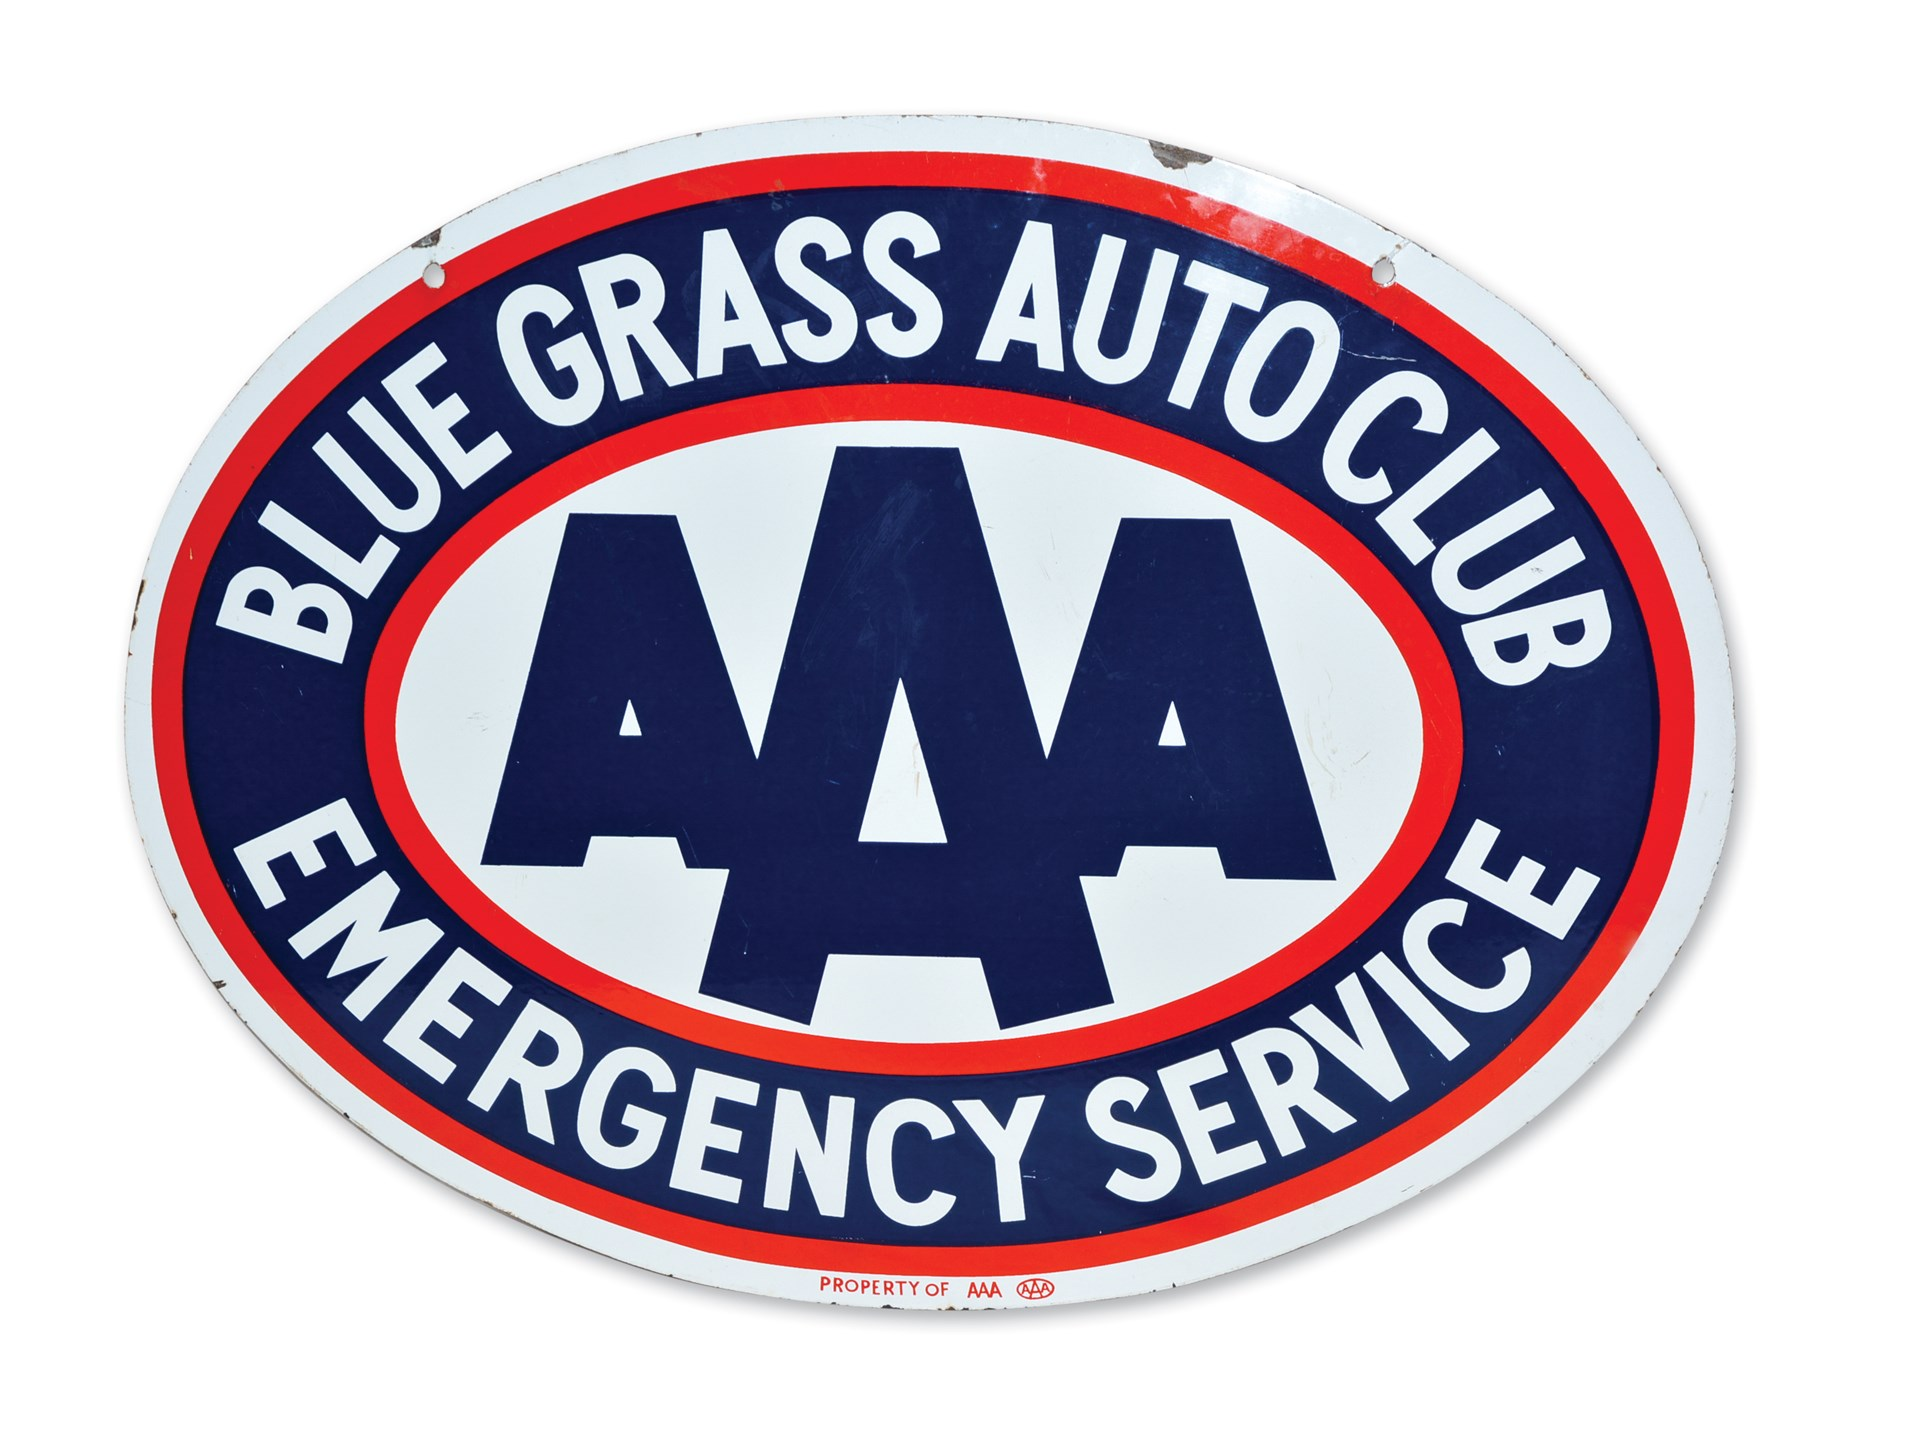 Aaa Auto Club Near Me >> Rm Sotheby S Aaa Blue Grass Auto Club Emergency Service Sign